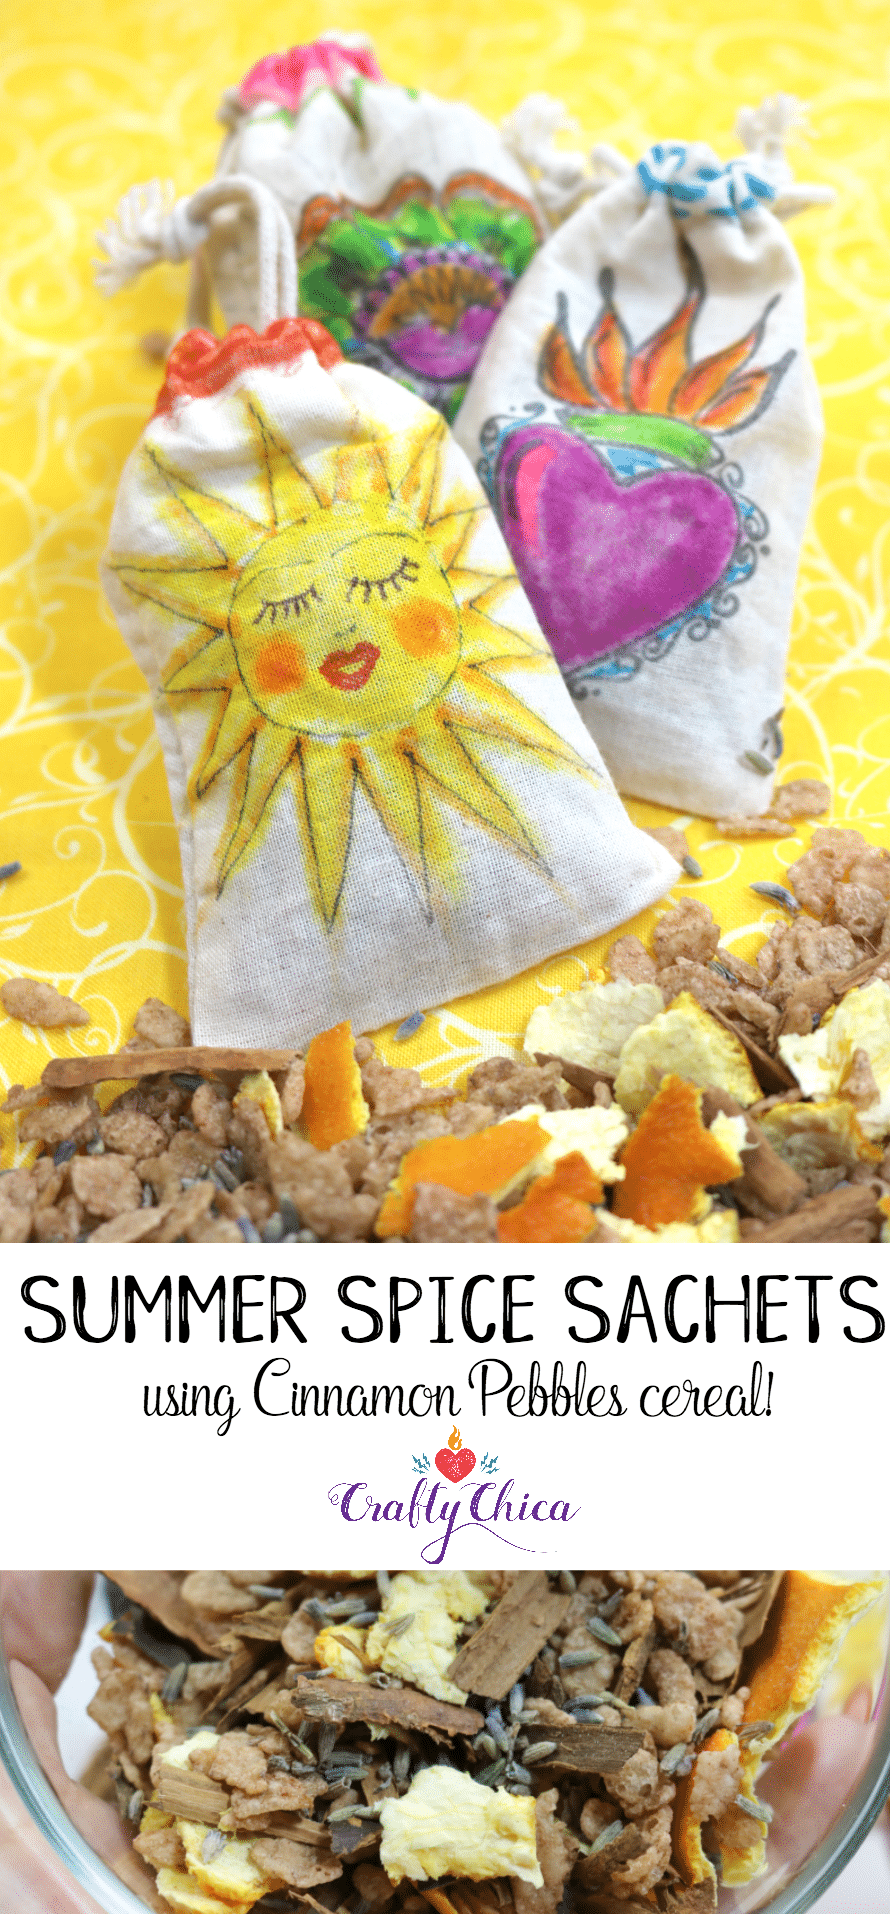 Summer Spice Sachets by Crafty Chica.